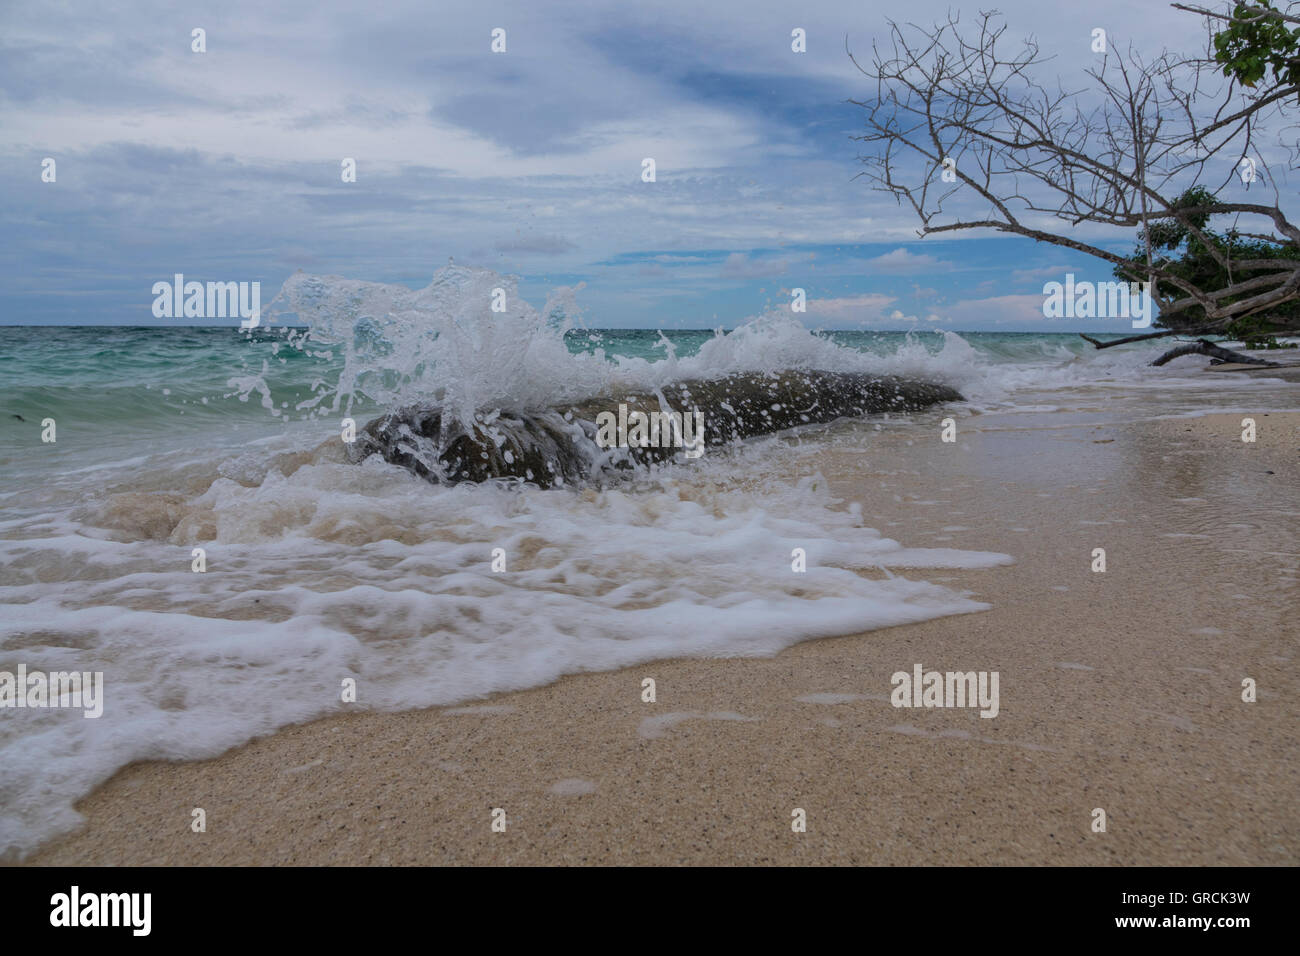 Splashing Waves Rolling On Sandy Beach Stock Photo